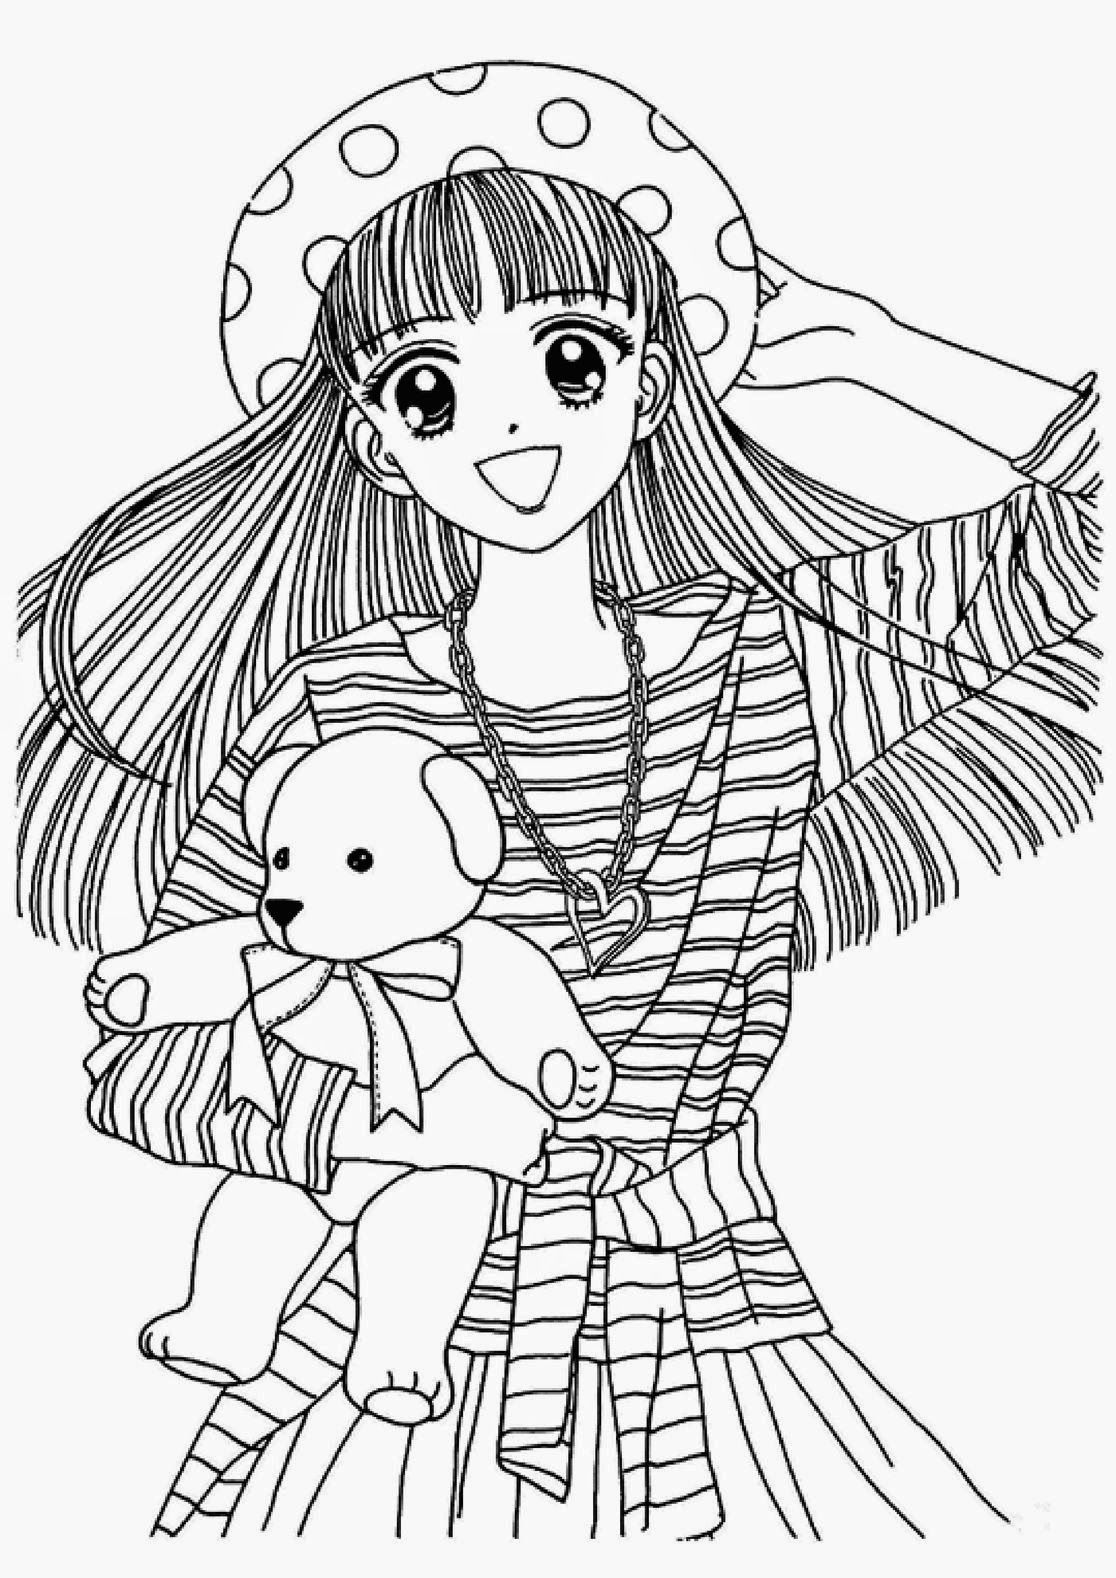 anime kawaii girl coloring pages anime coloring page kawaii beautiful cute anime coloring girl coloring kawaii anime pages